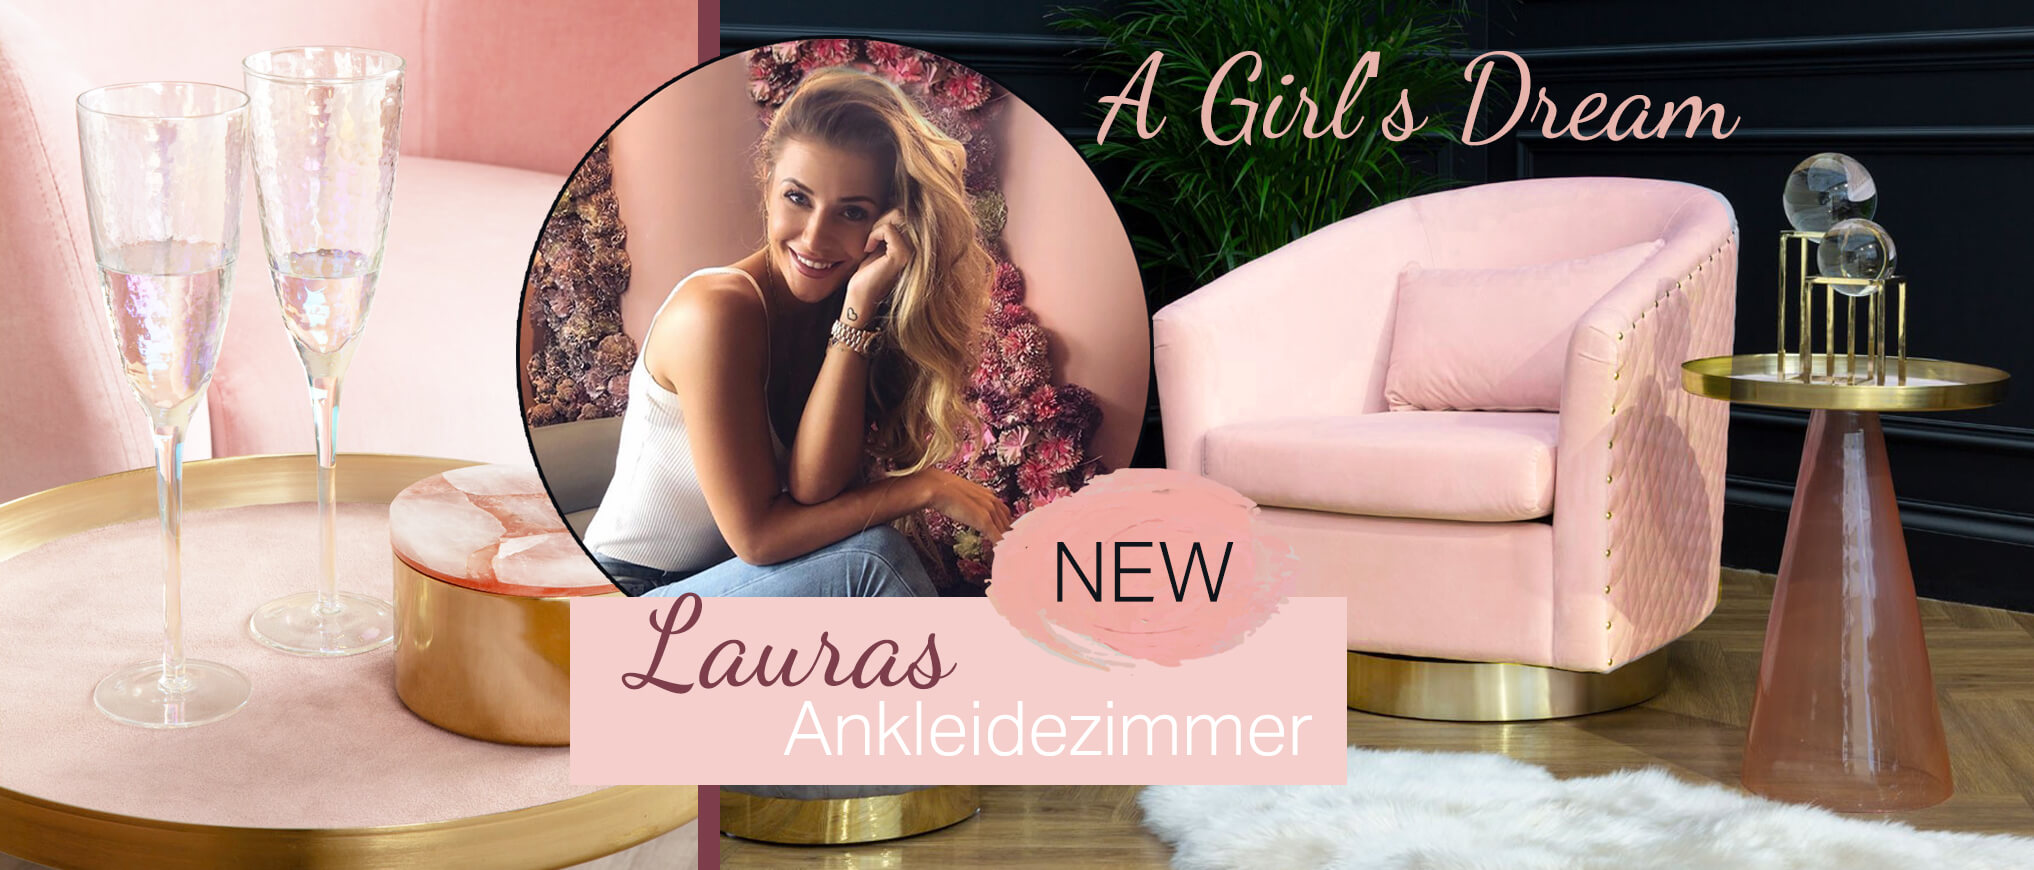 A Girls Dream - Lauras Ankleidezimmer